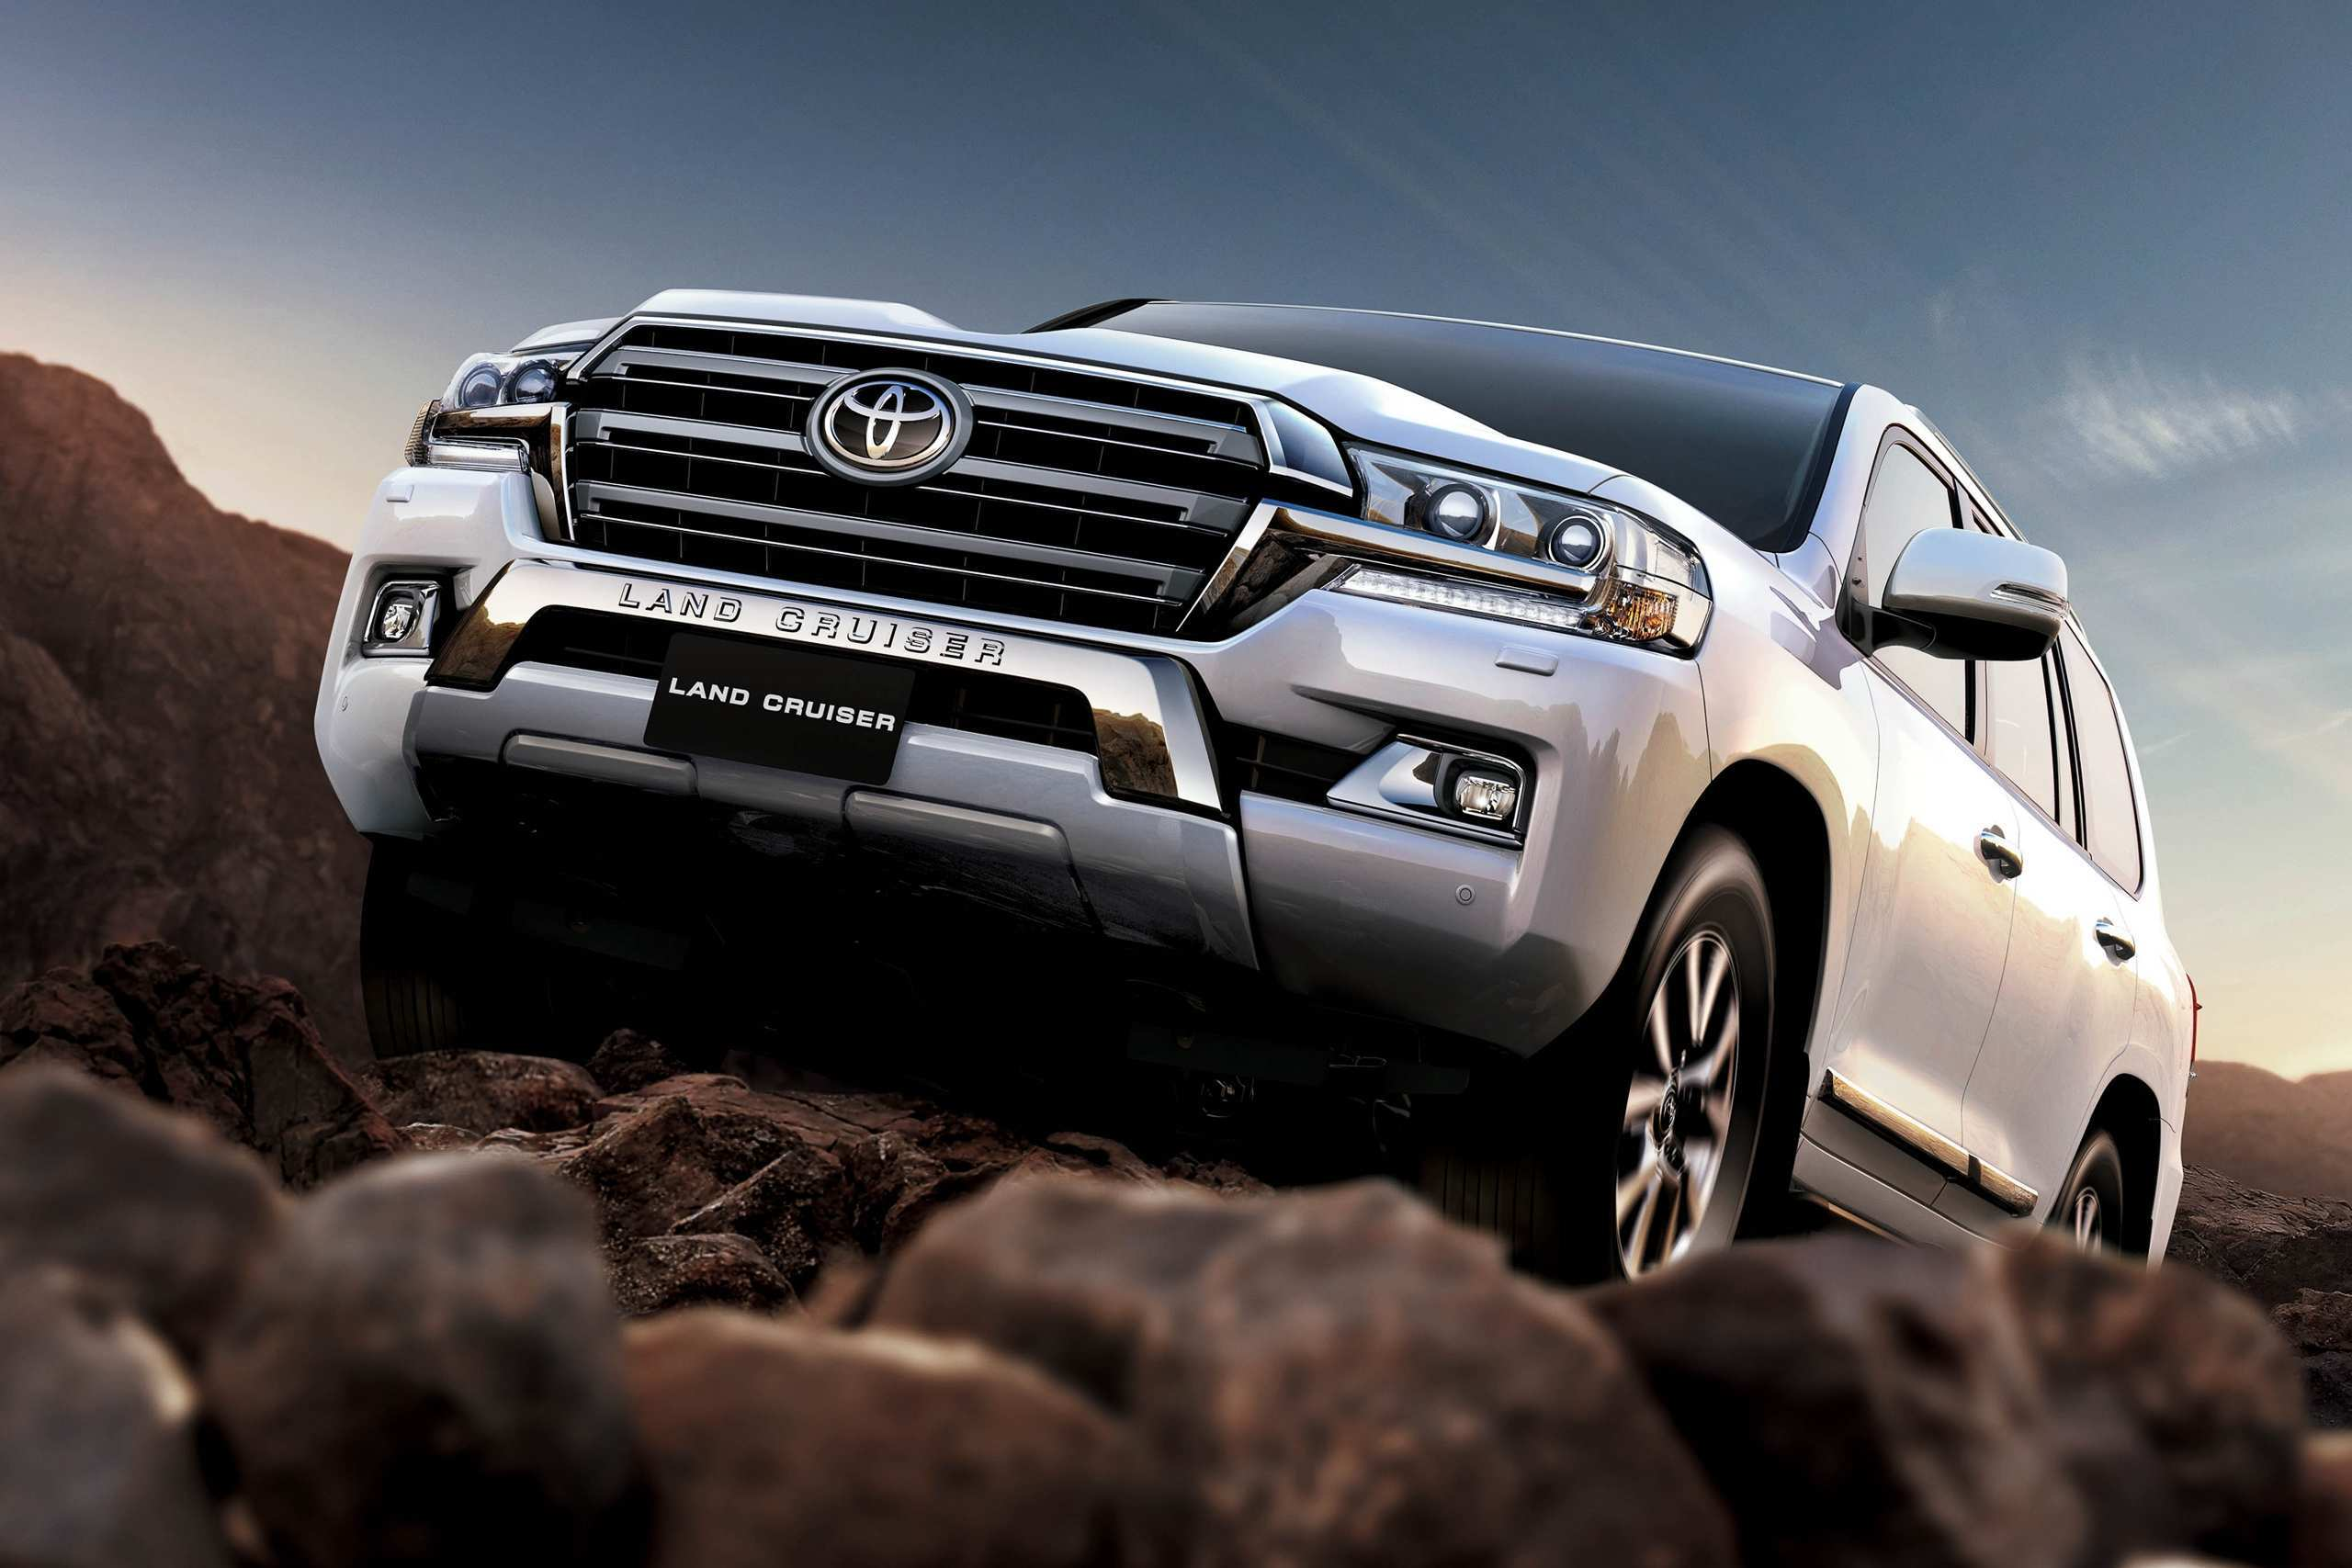 34 Best 2020 Toyota Land Cruiser Diesel Review And Release Date